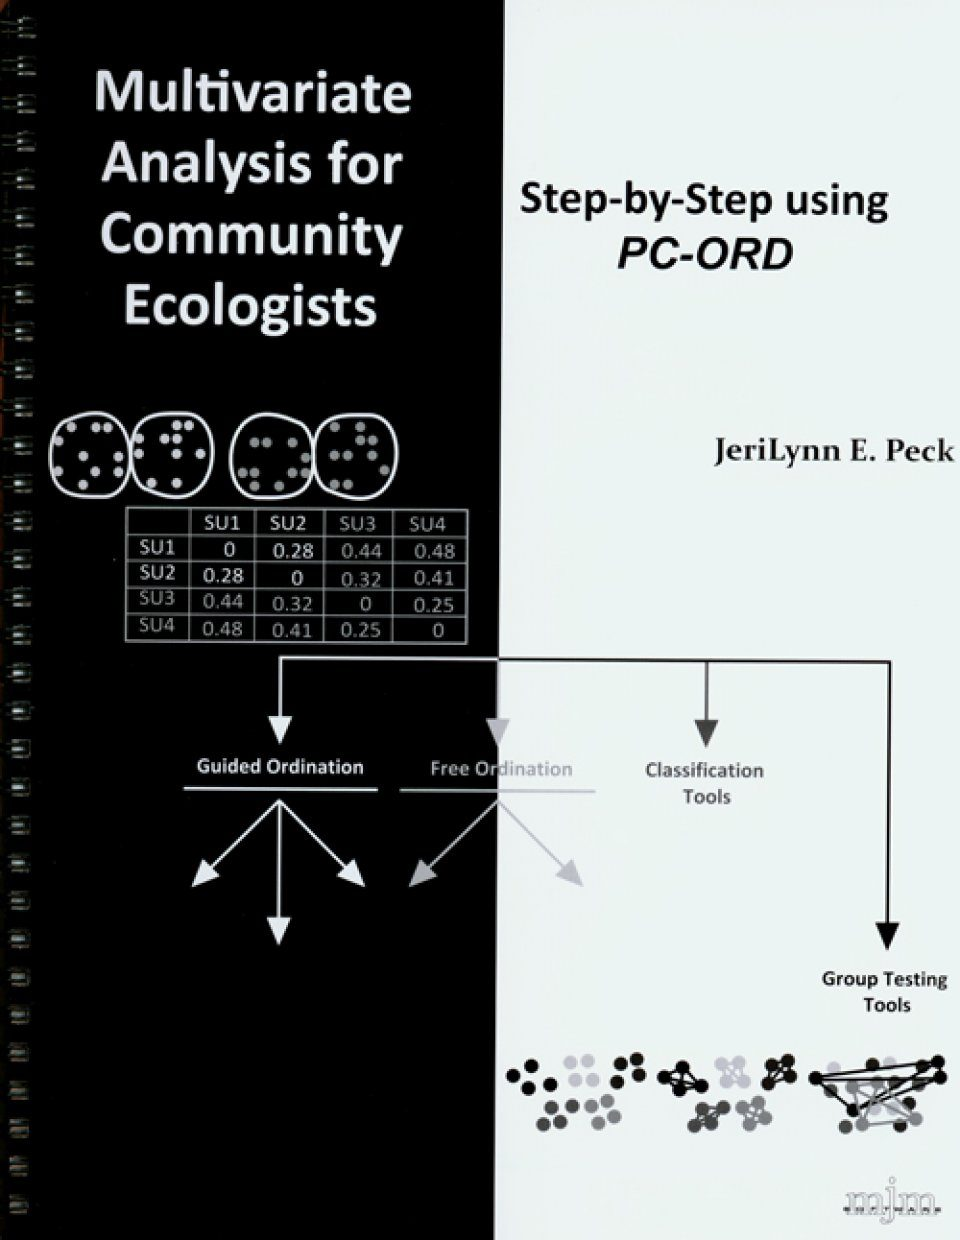 Multivariate Analysis for Community Ecologists